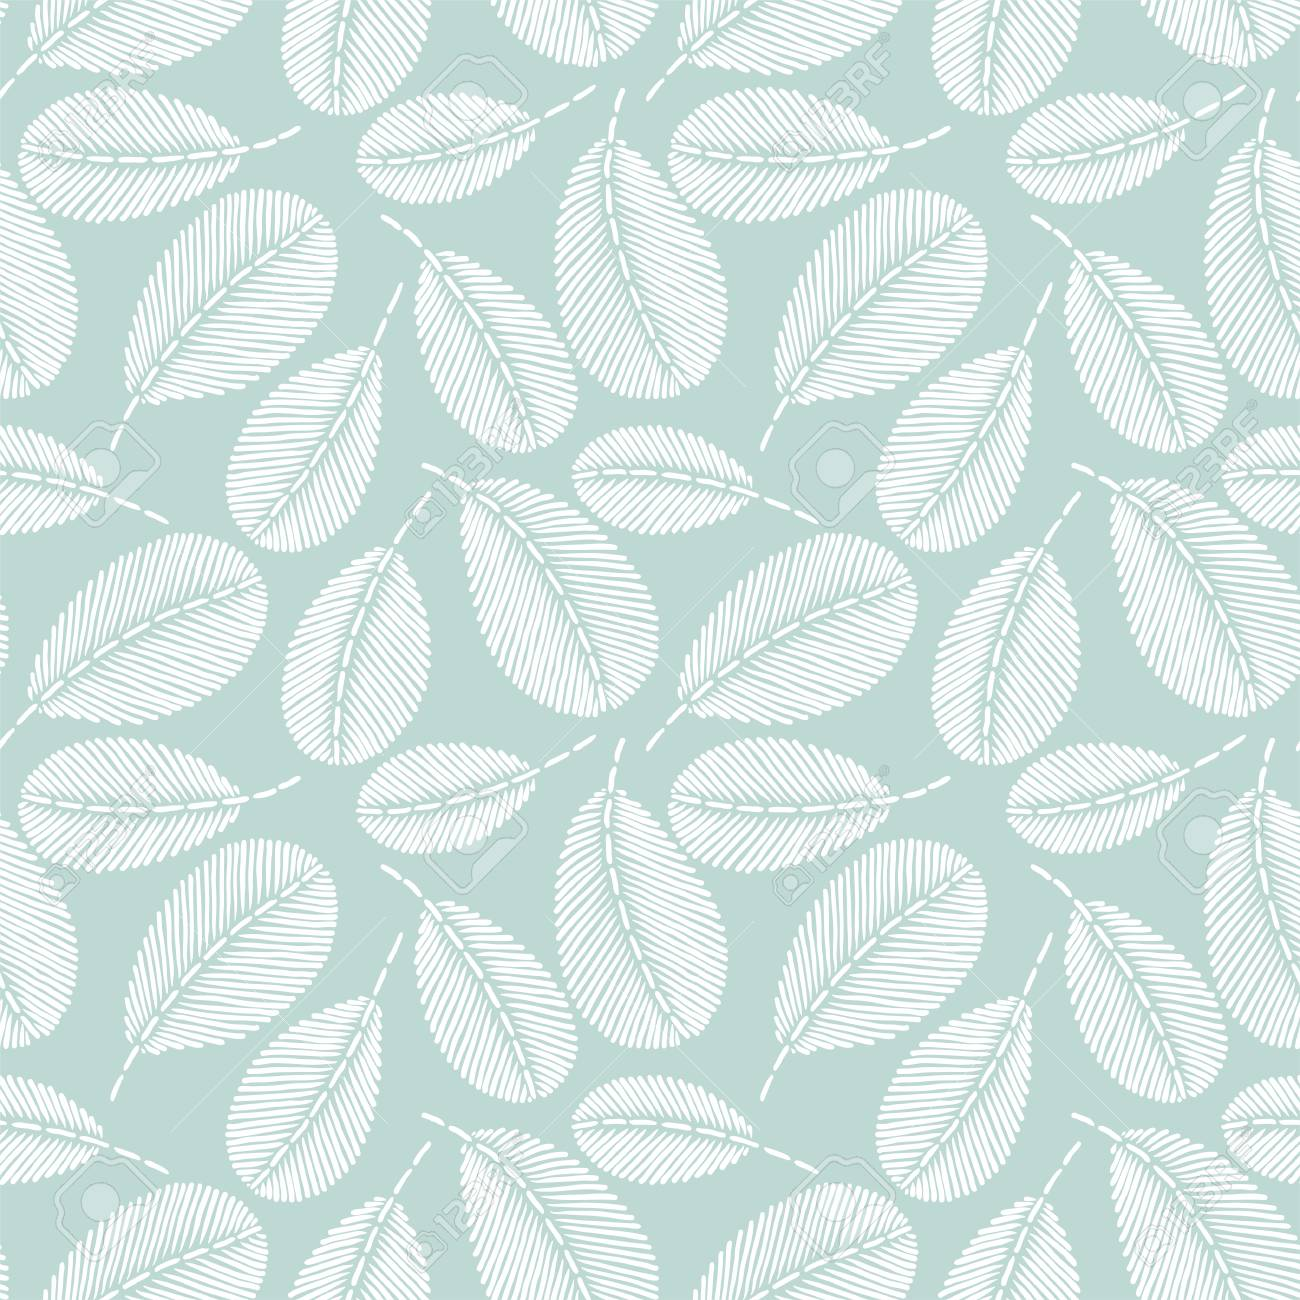 Banque dimages beautiful vintage hand drawn leaf seamless pattern cute decoration for home decor embroidery stitches imitation